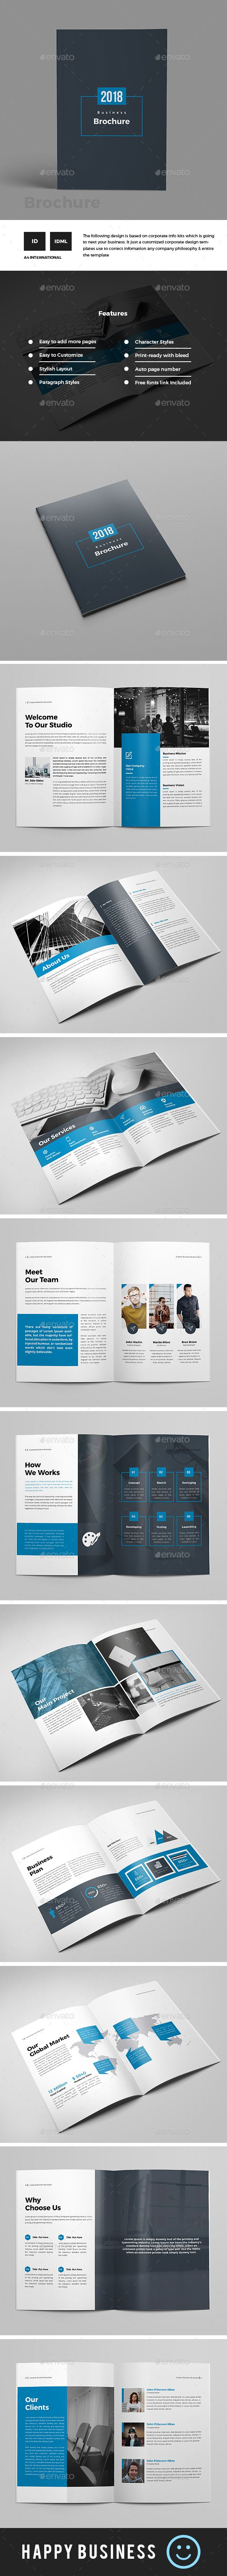 Best Brochure Template PSD Designs Images On Pinterest - Download brochure template word